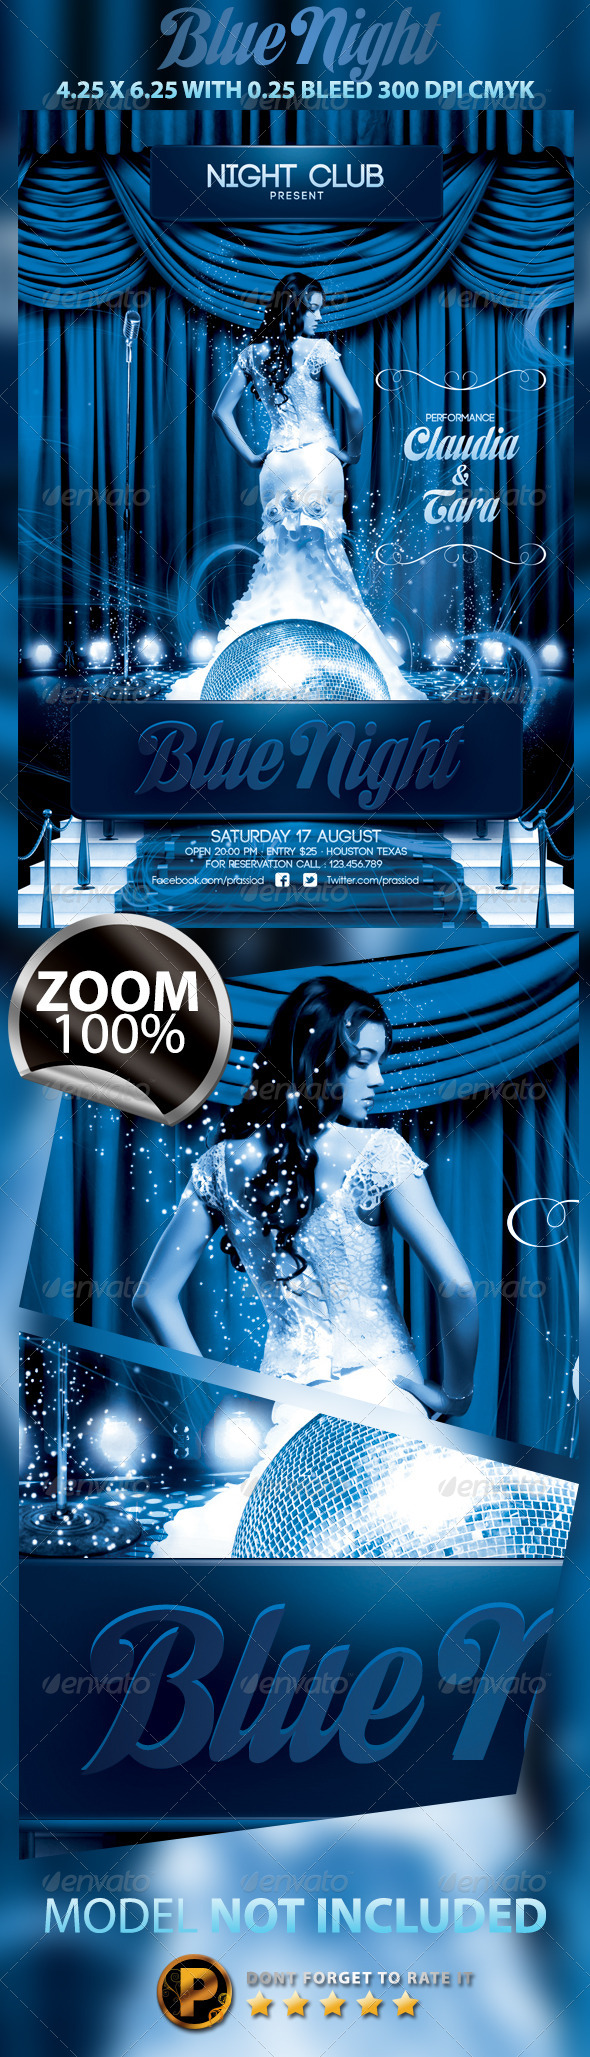 Blue Night Flyer Template - Clubs & Parties Events